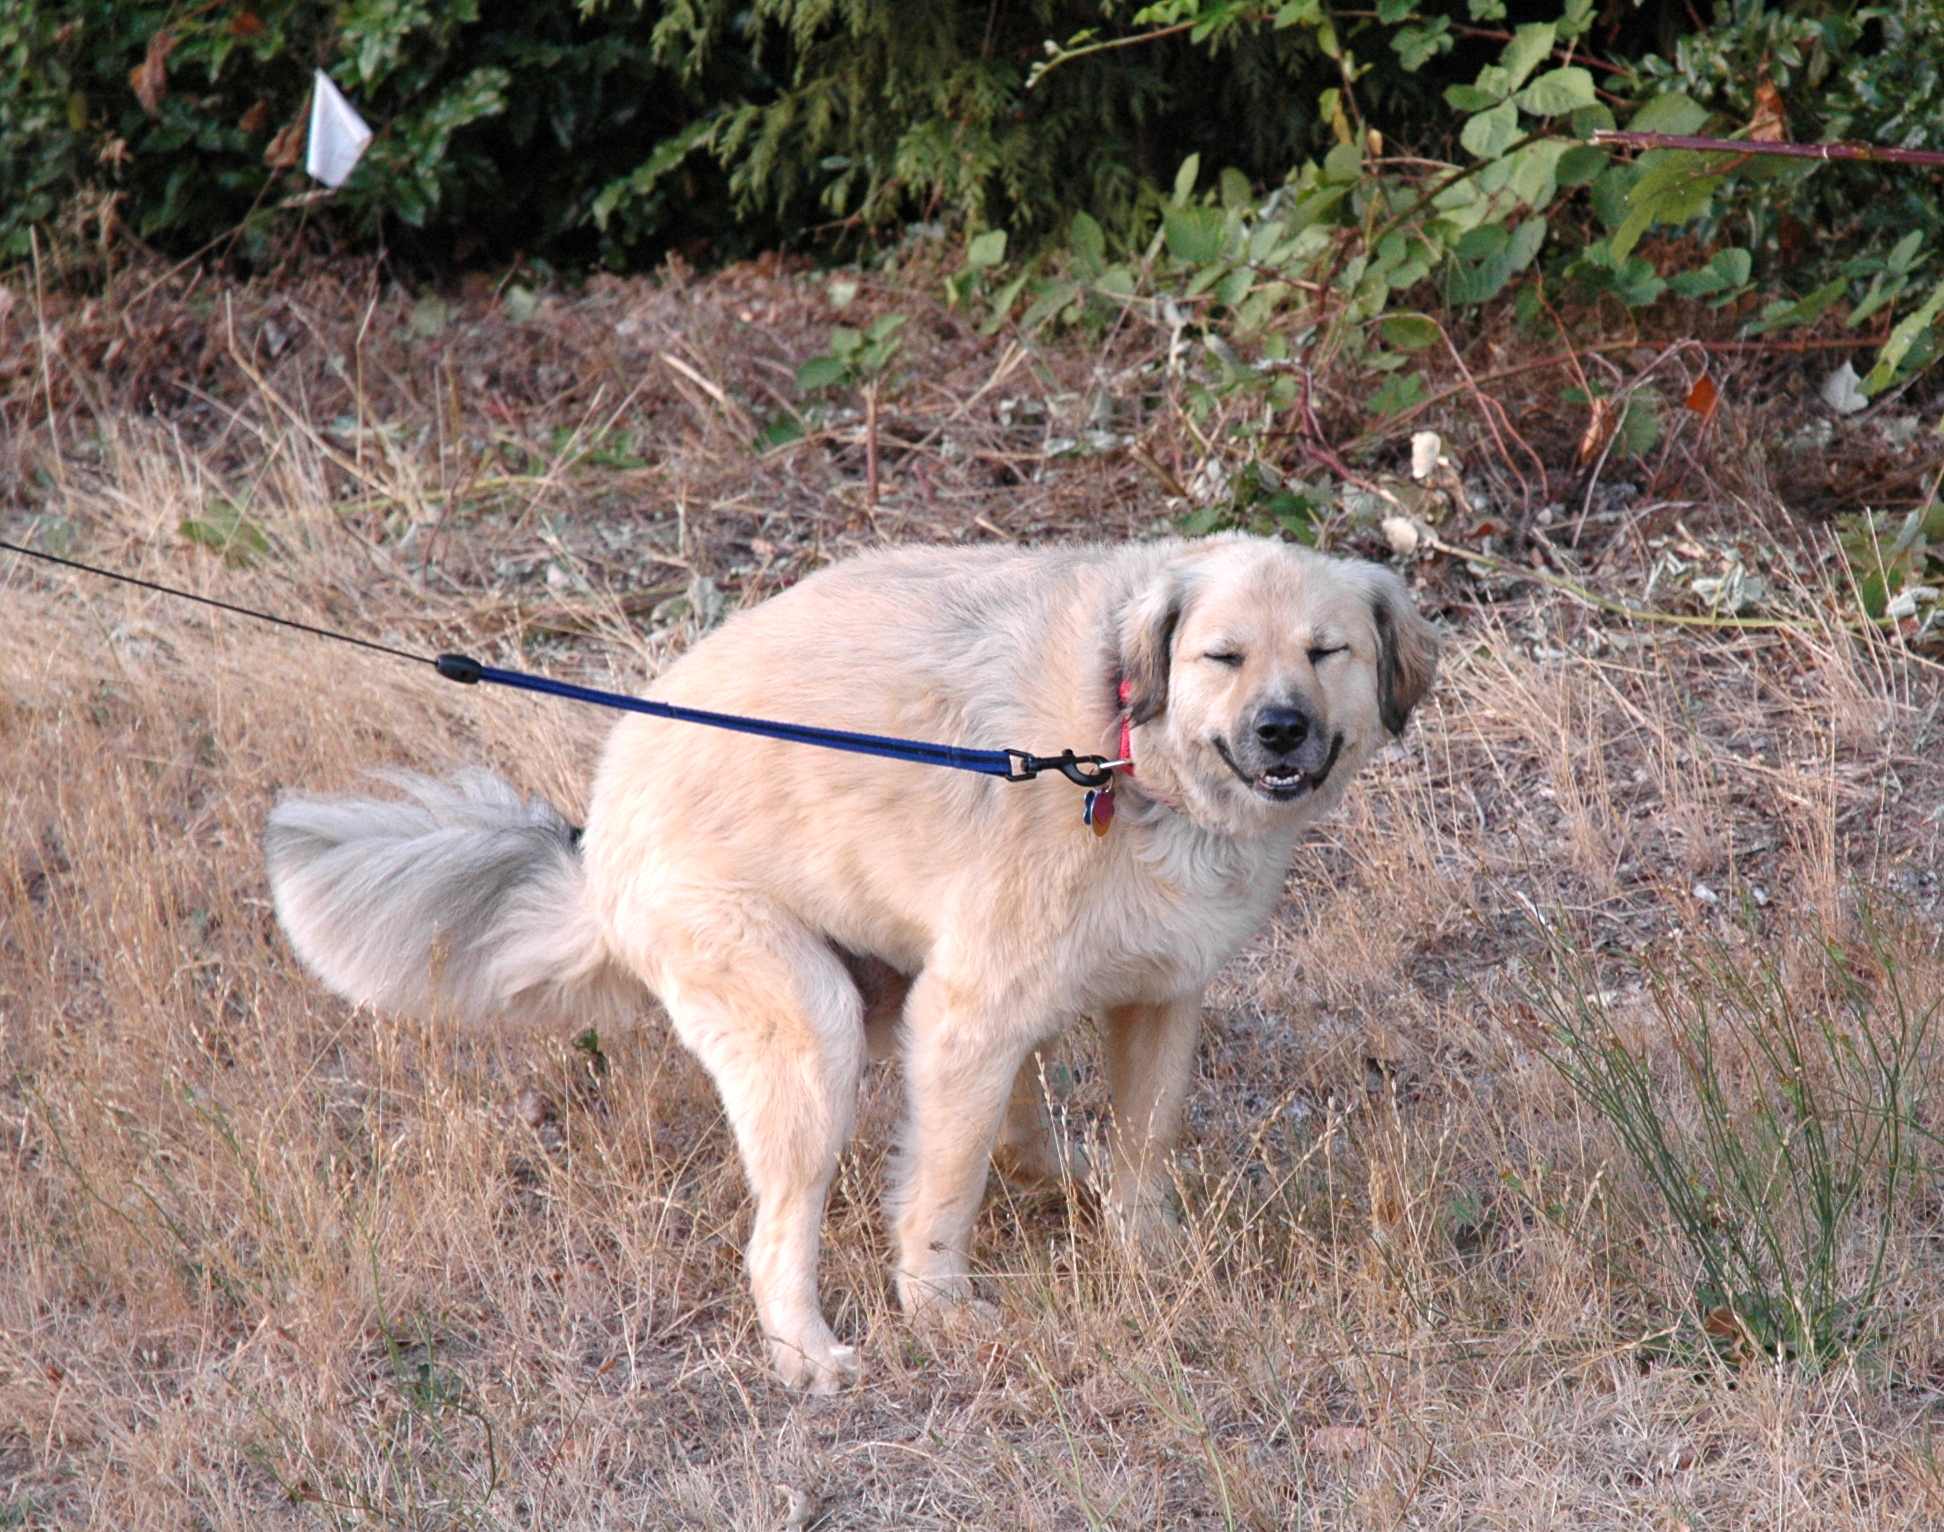 Just why dogs use the magnetic field to align themselves while defecating is still a mystery that only they know. Image source: Wikimedia Commons, uploaded by Brandon Weeks.